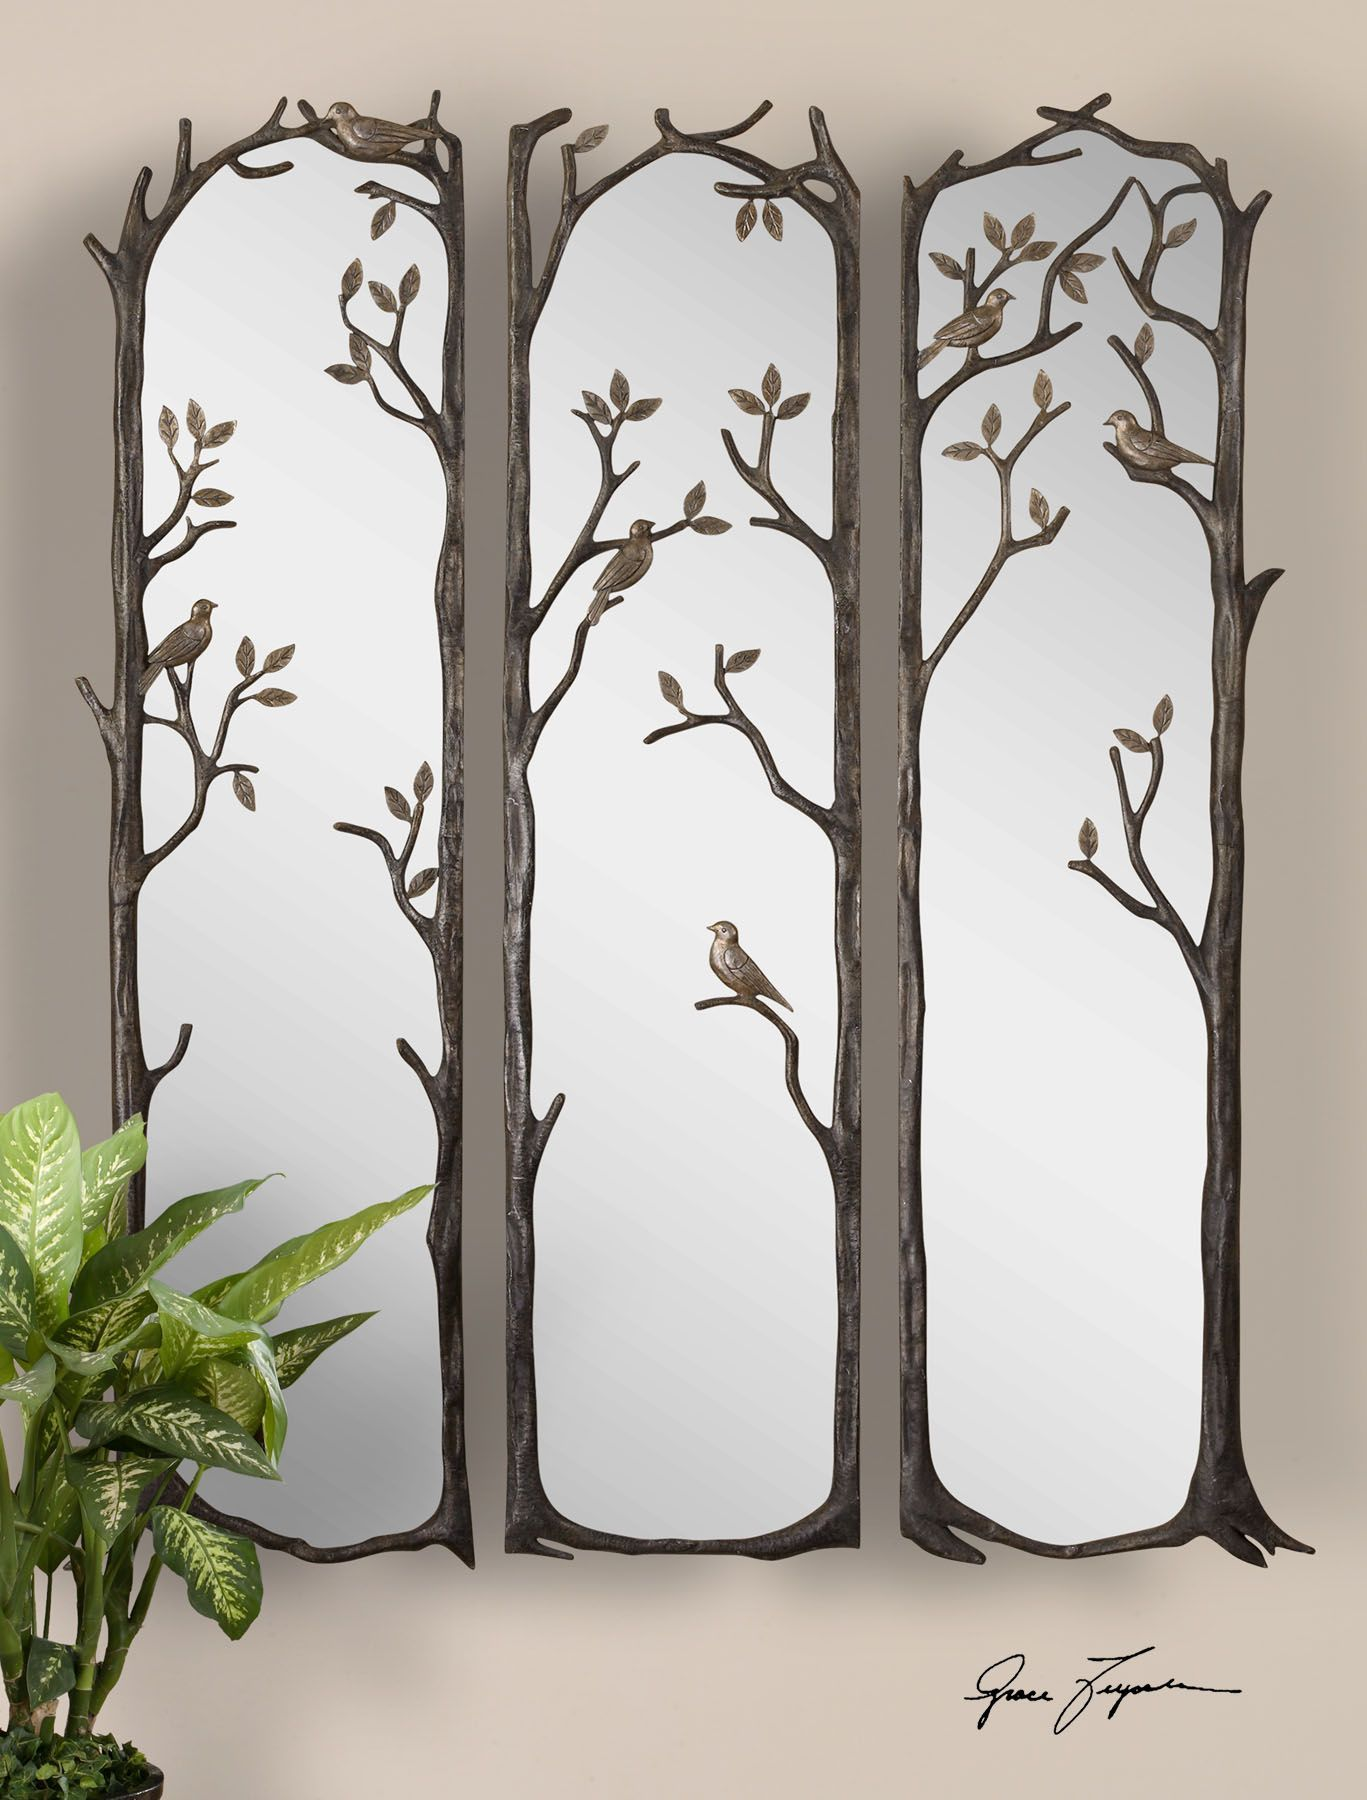 Decorative Mirror Uttermost Perching Birds Decorative Mirror Set 3 12788 Uttermost